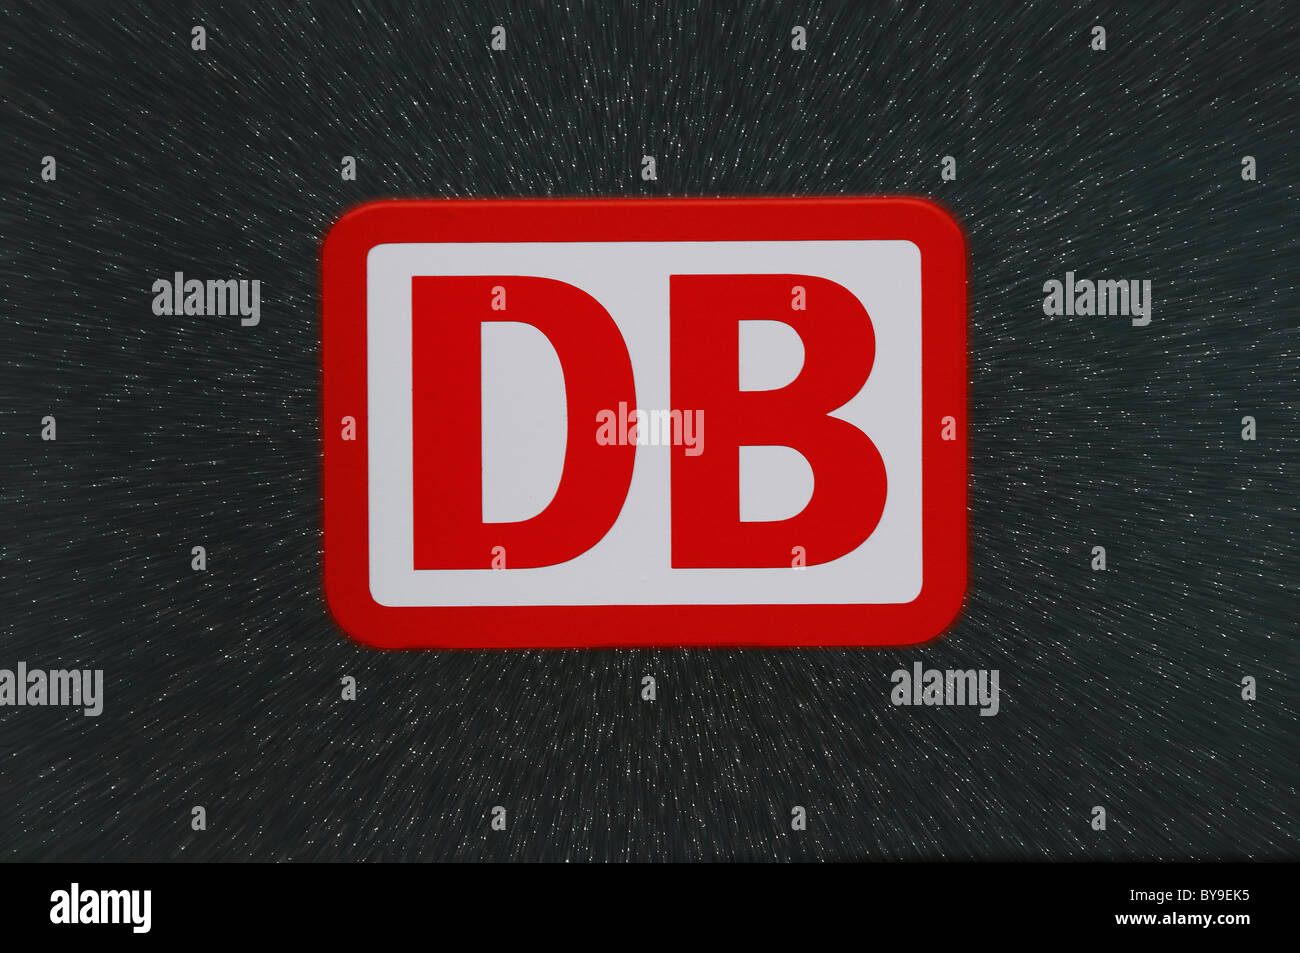 DB Logo, Deutsche Bahn, German Railways - Stock Image